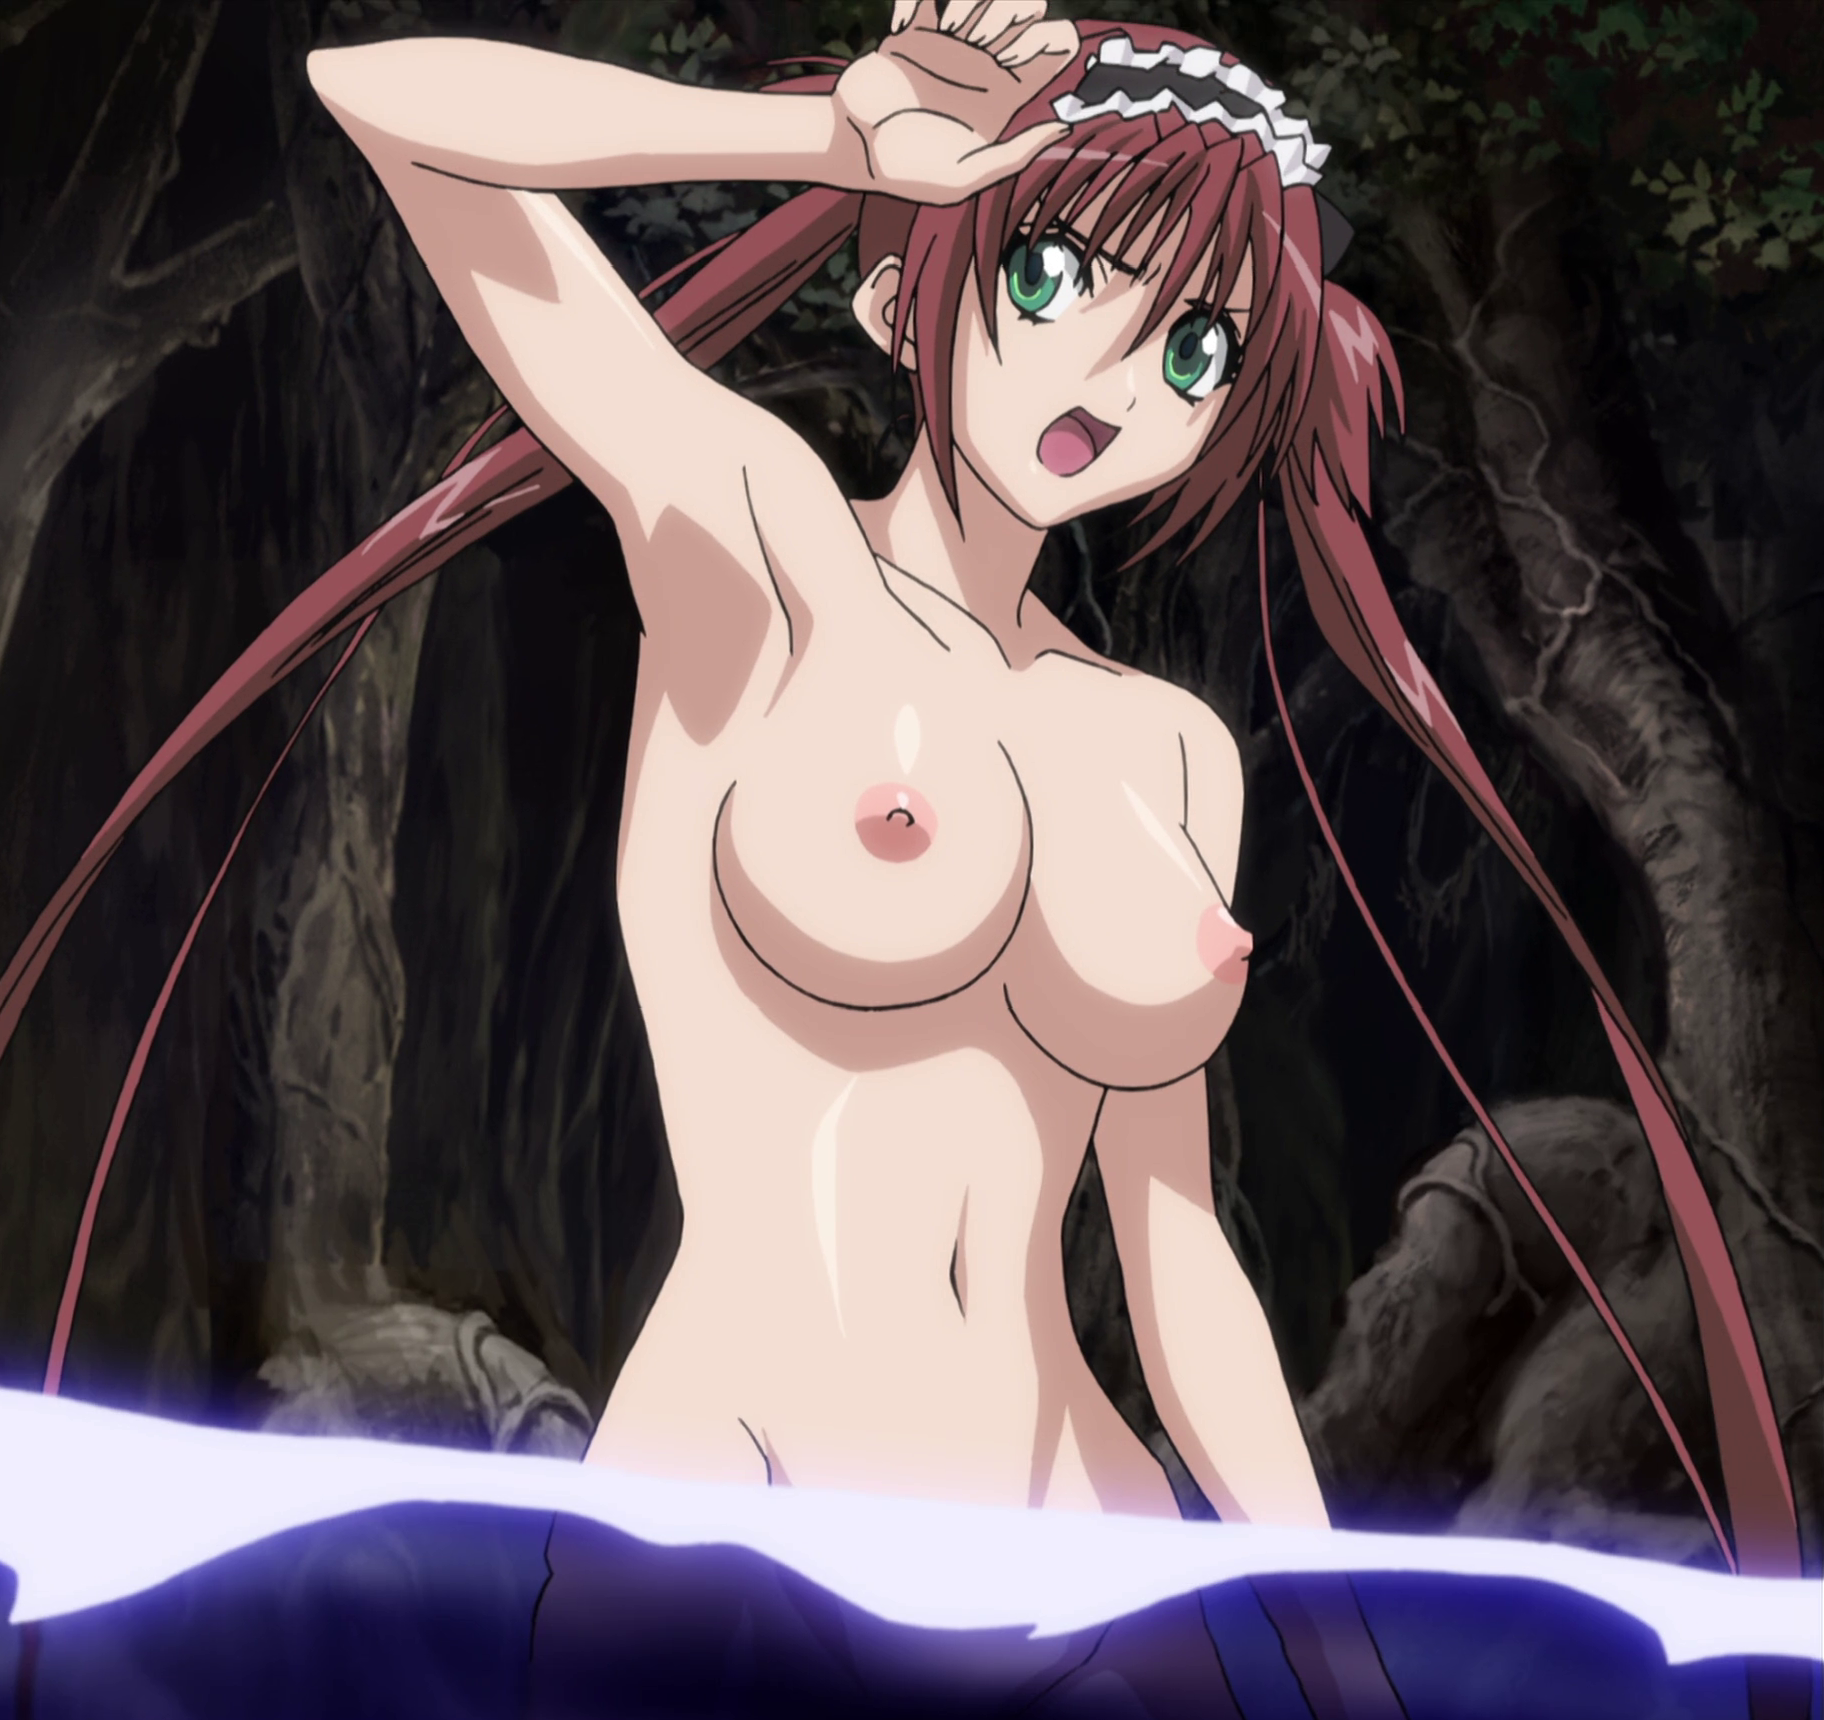 Queens blade covered pussy